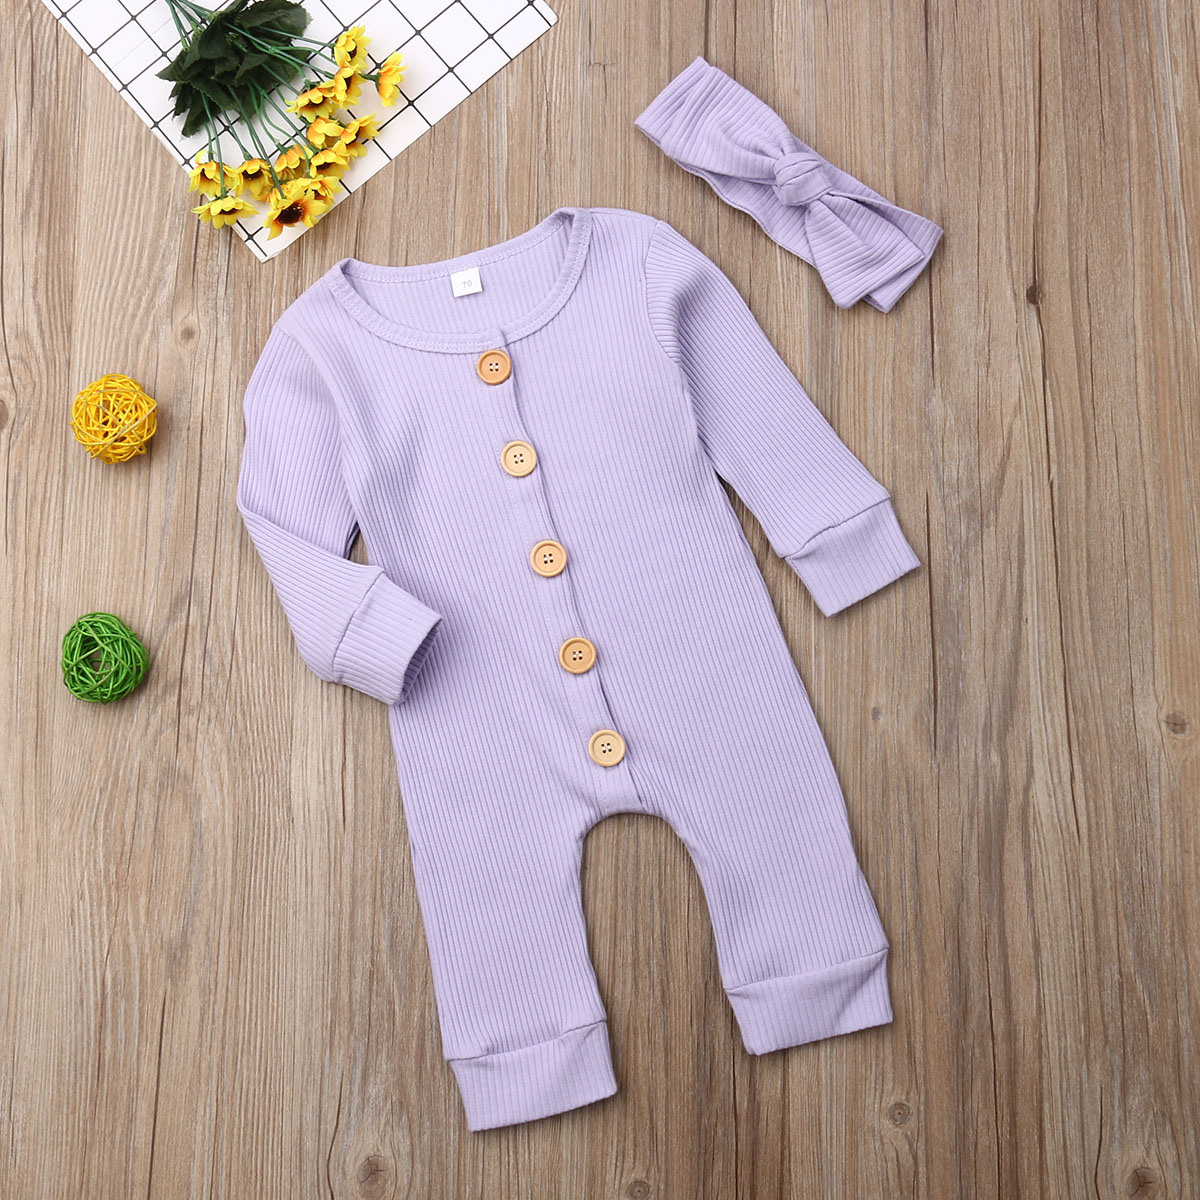 H0fa78398e6b44b8ea8ac8f77dac93c704 Spring Fall Newborn Baby Girl Boy Clothes Long Sleeve Knitted Romper + Headband Jumpsuit 2PCS Outfit 0-24M